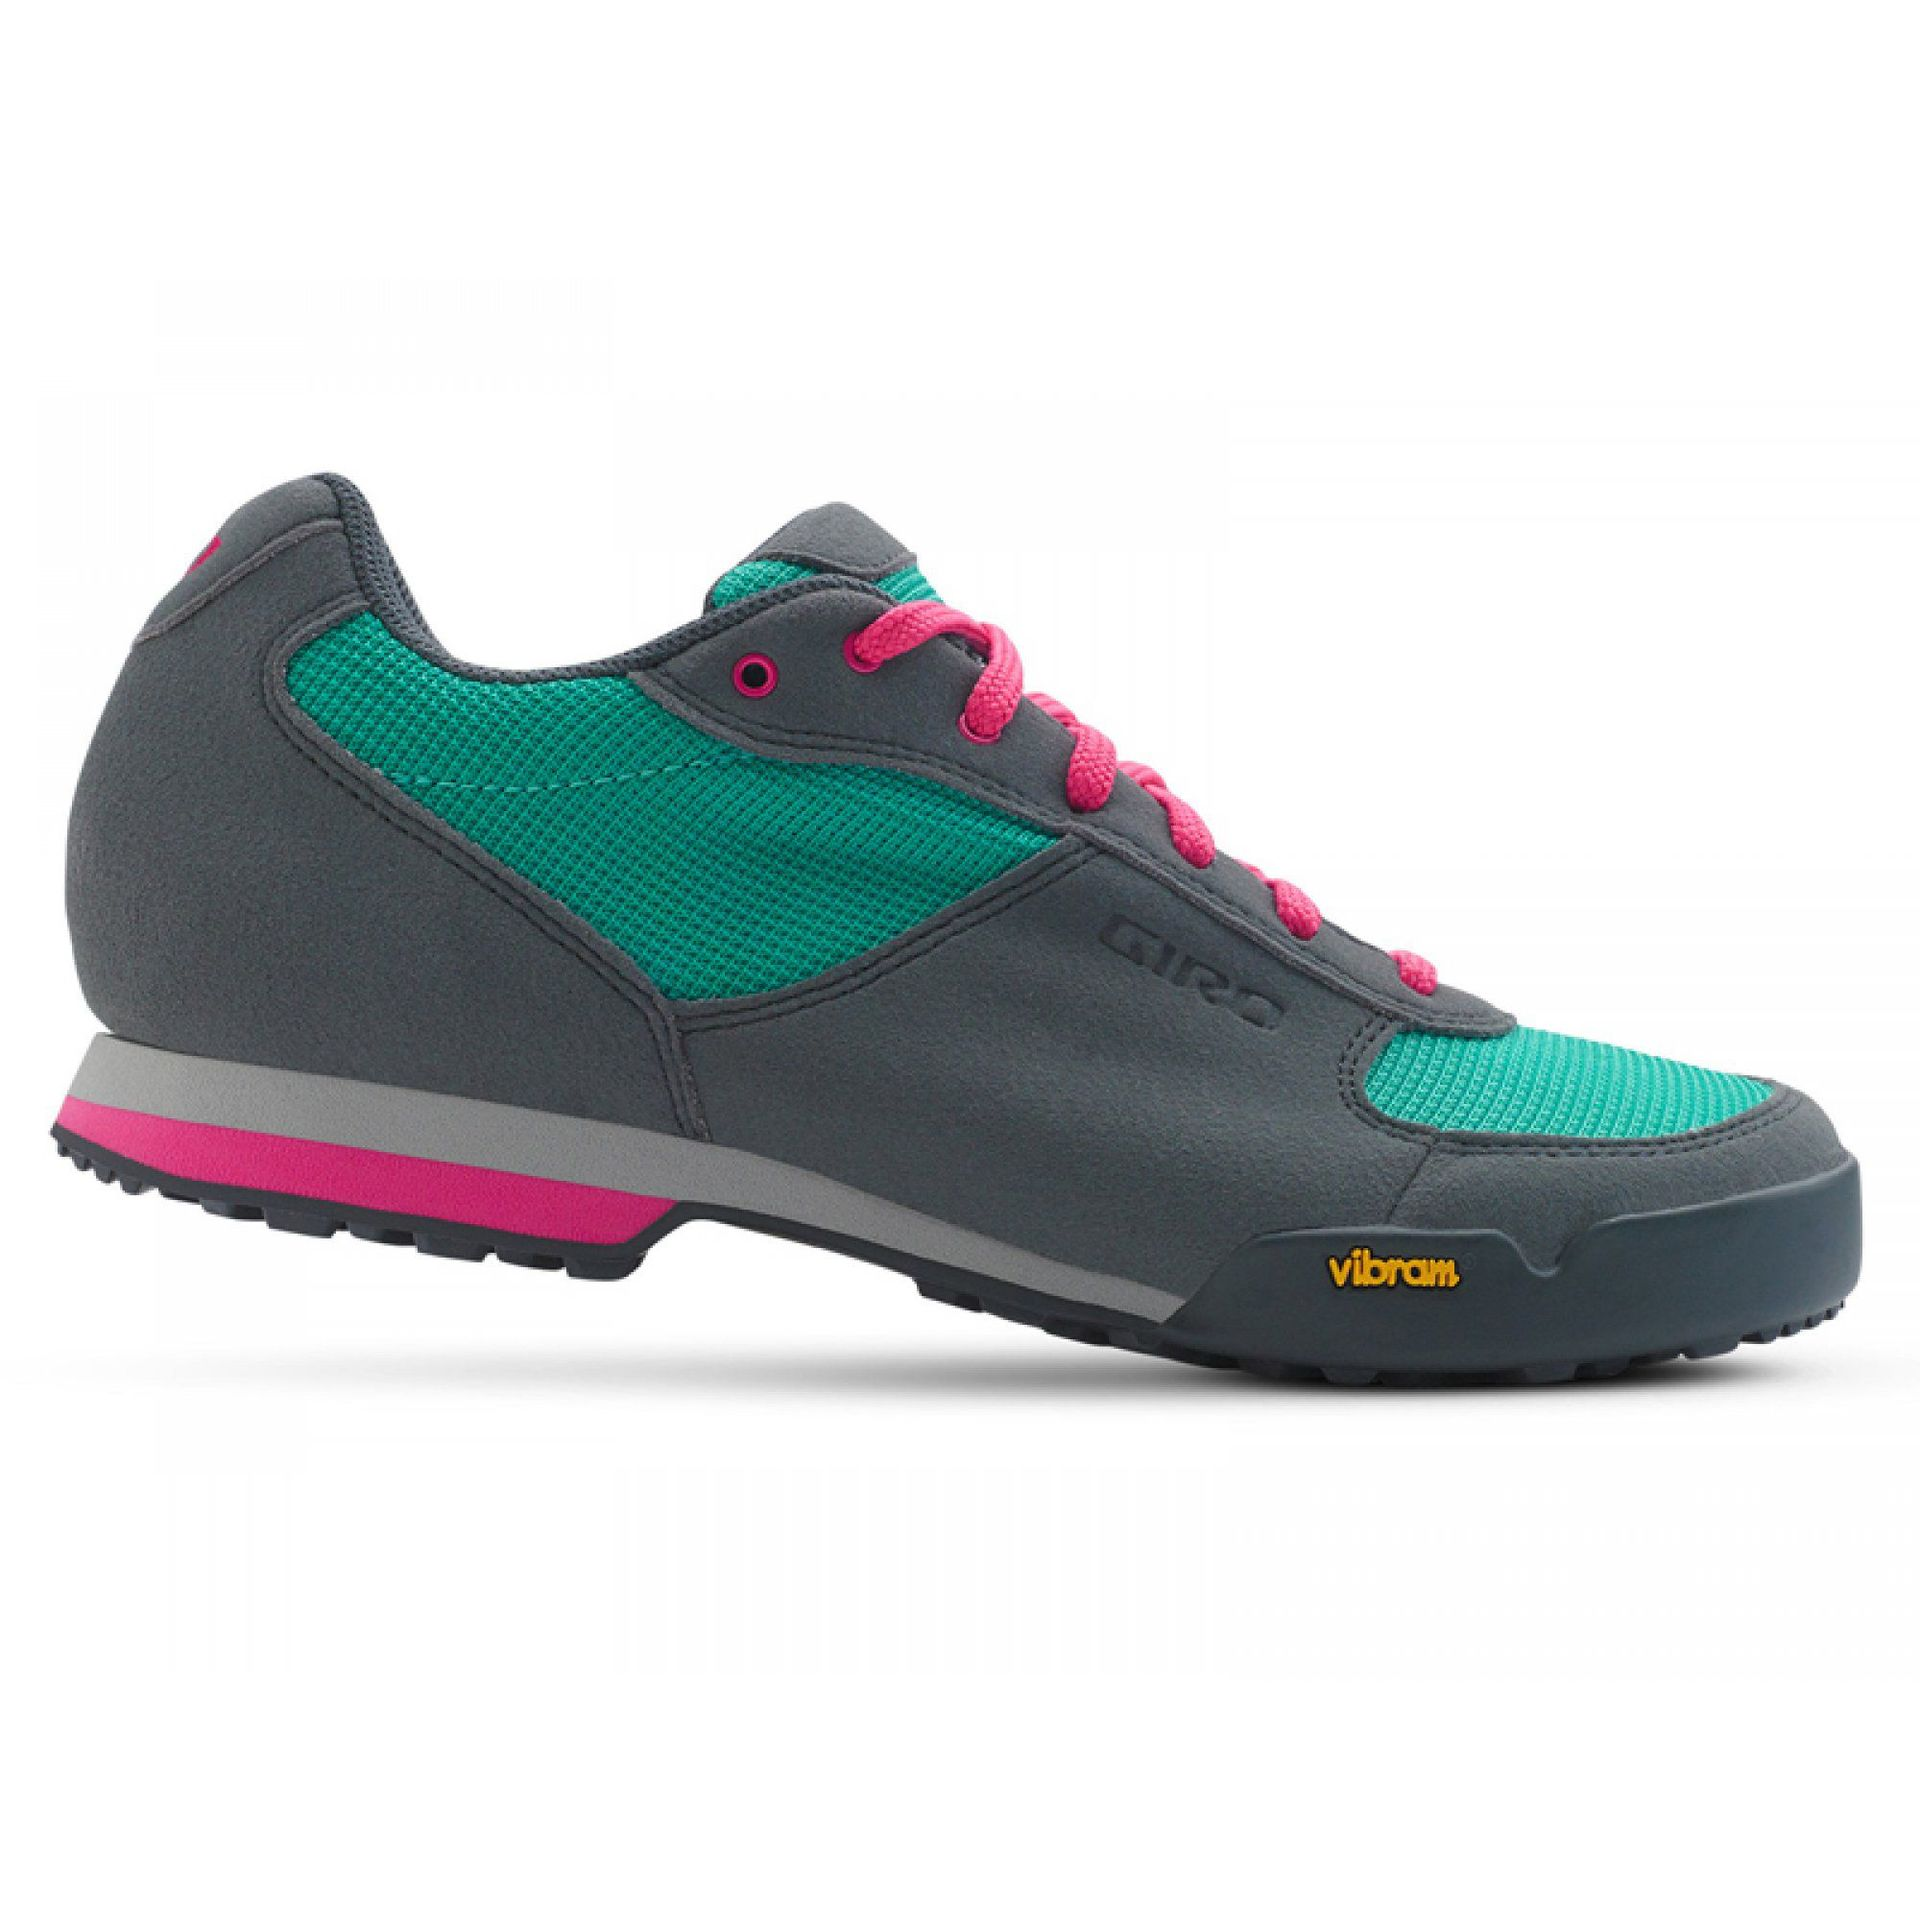 BUTY ROWEROWE GIRO PETRA VR TURQUOISE|BRIGHT PINK 1